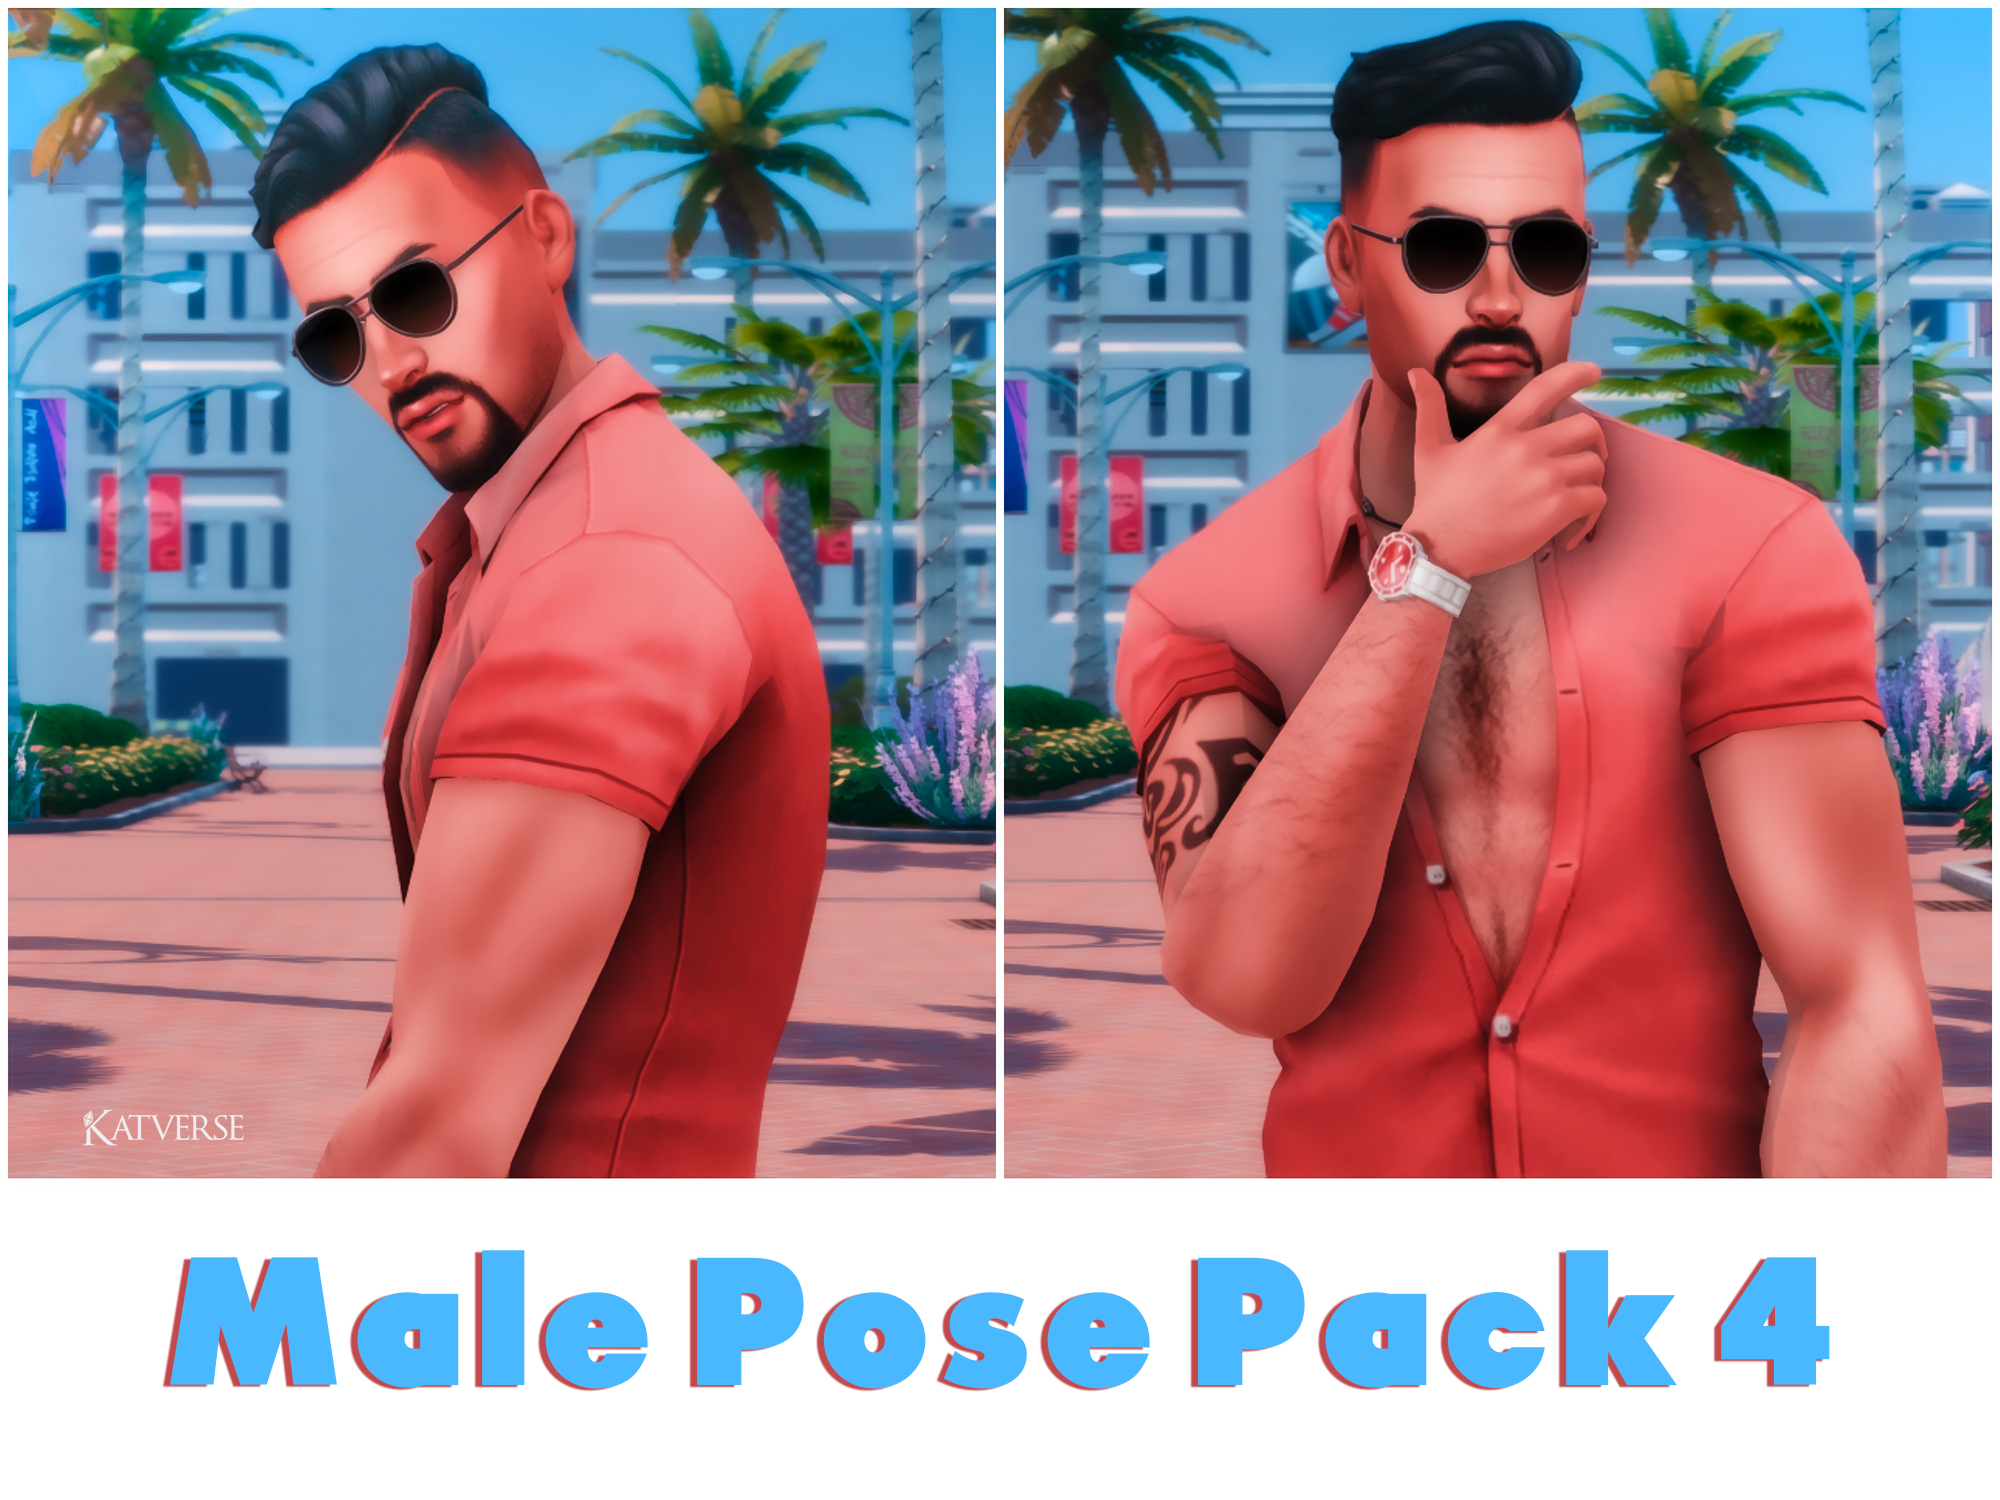 Male Pose Pack 4